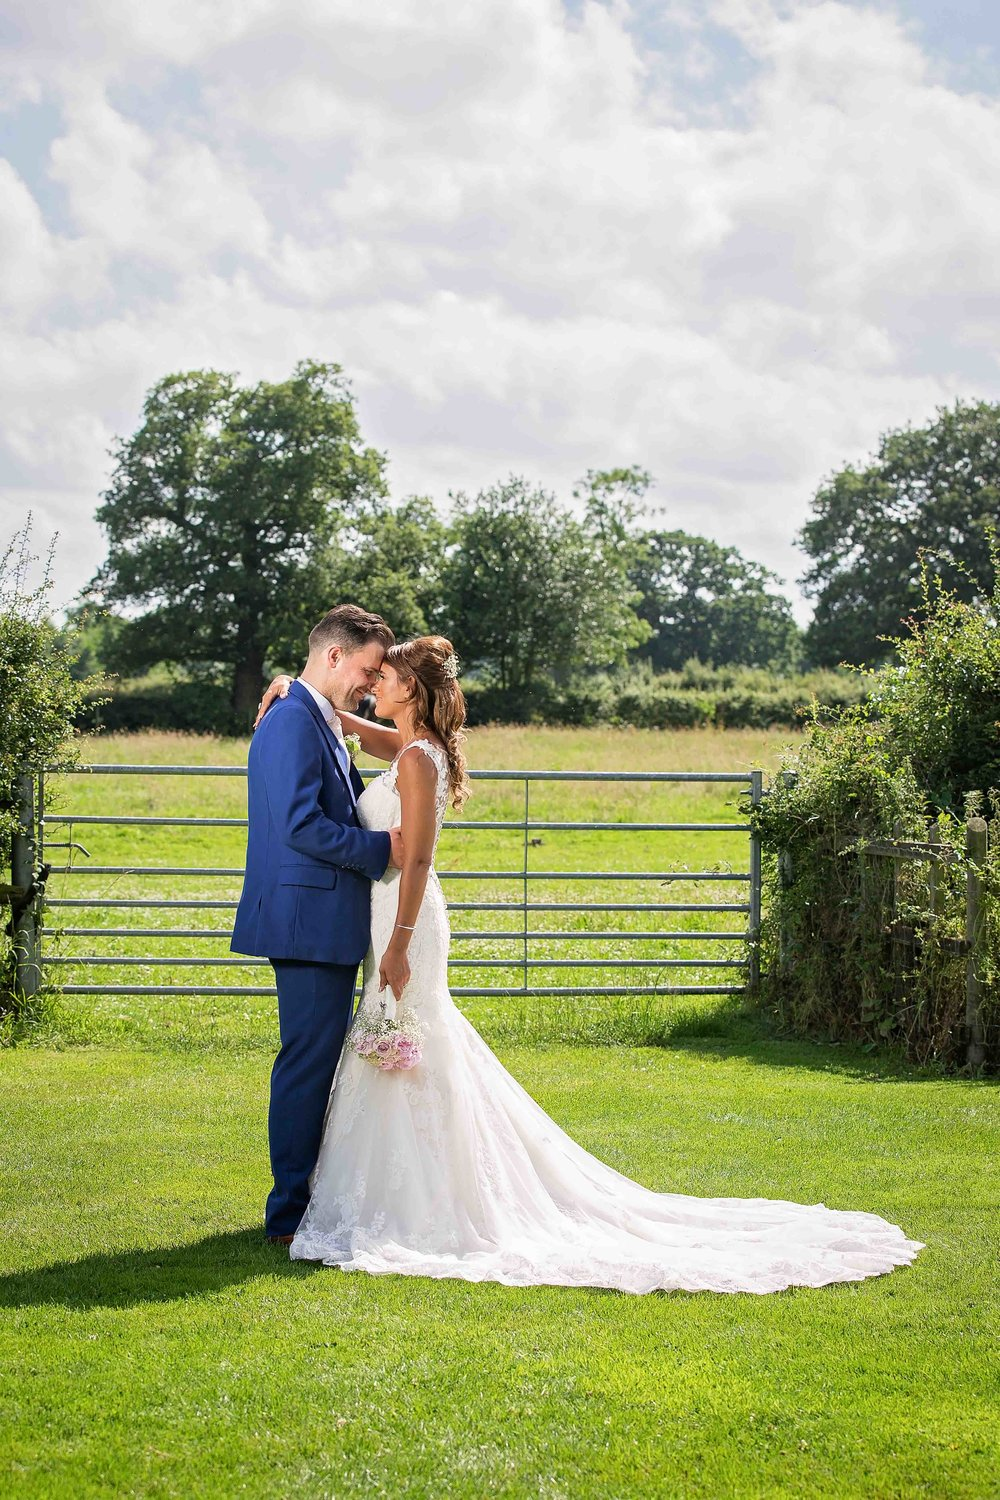 Tim & Megan - The Old Stables, Charnwood